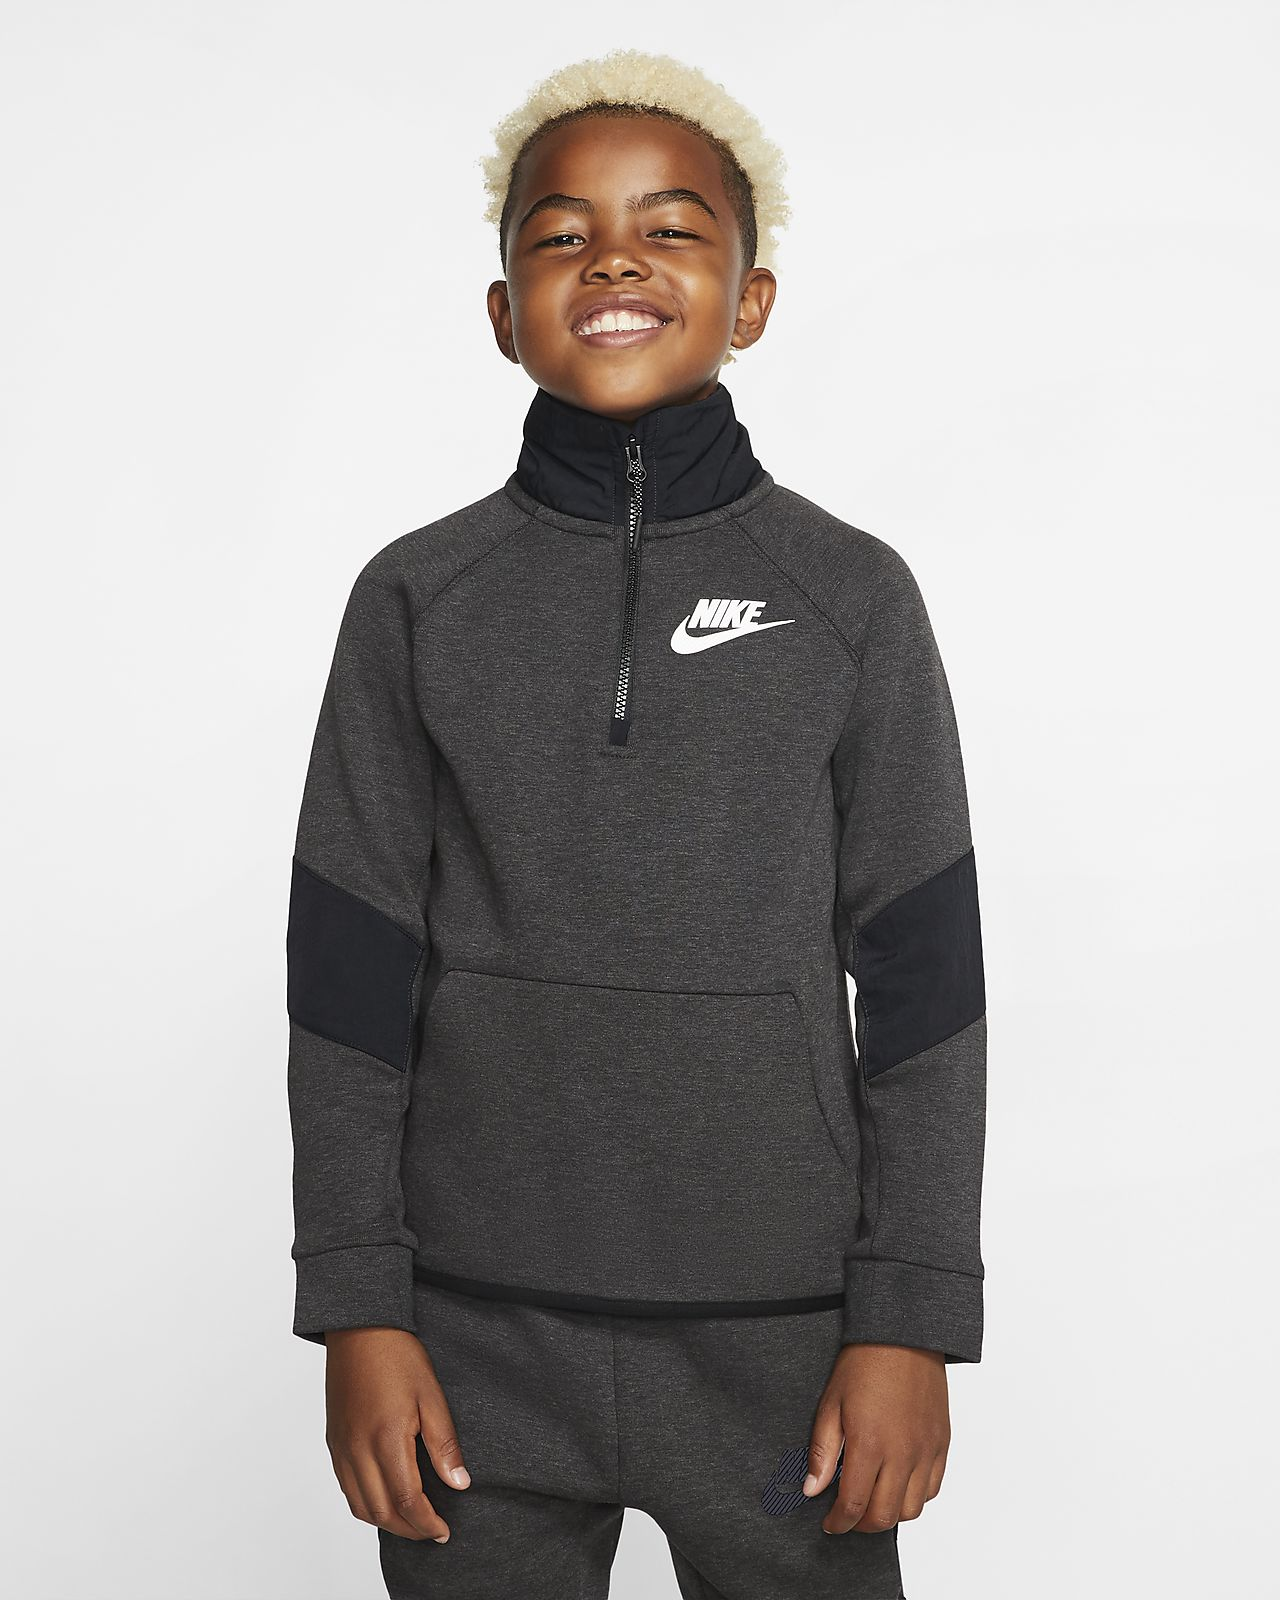 Nike Sportswear Tech Fleece Part superior de màniga llarga - Nen/a